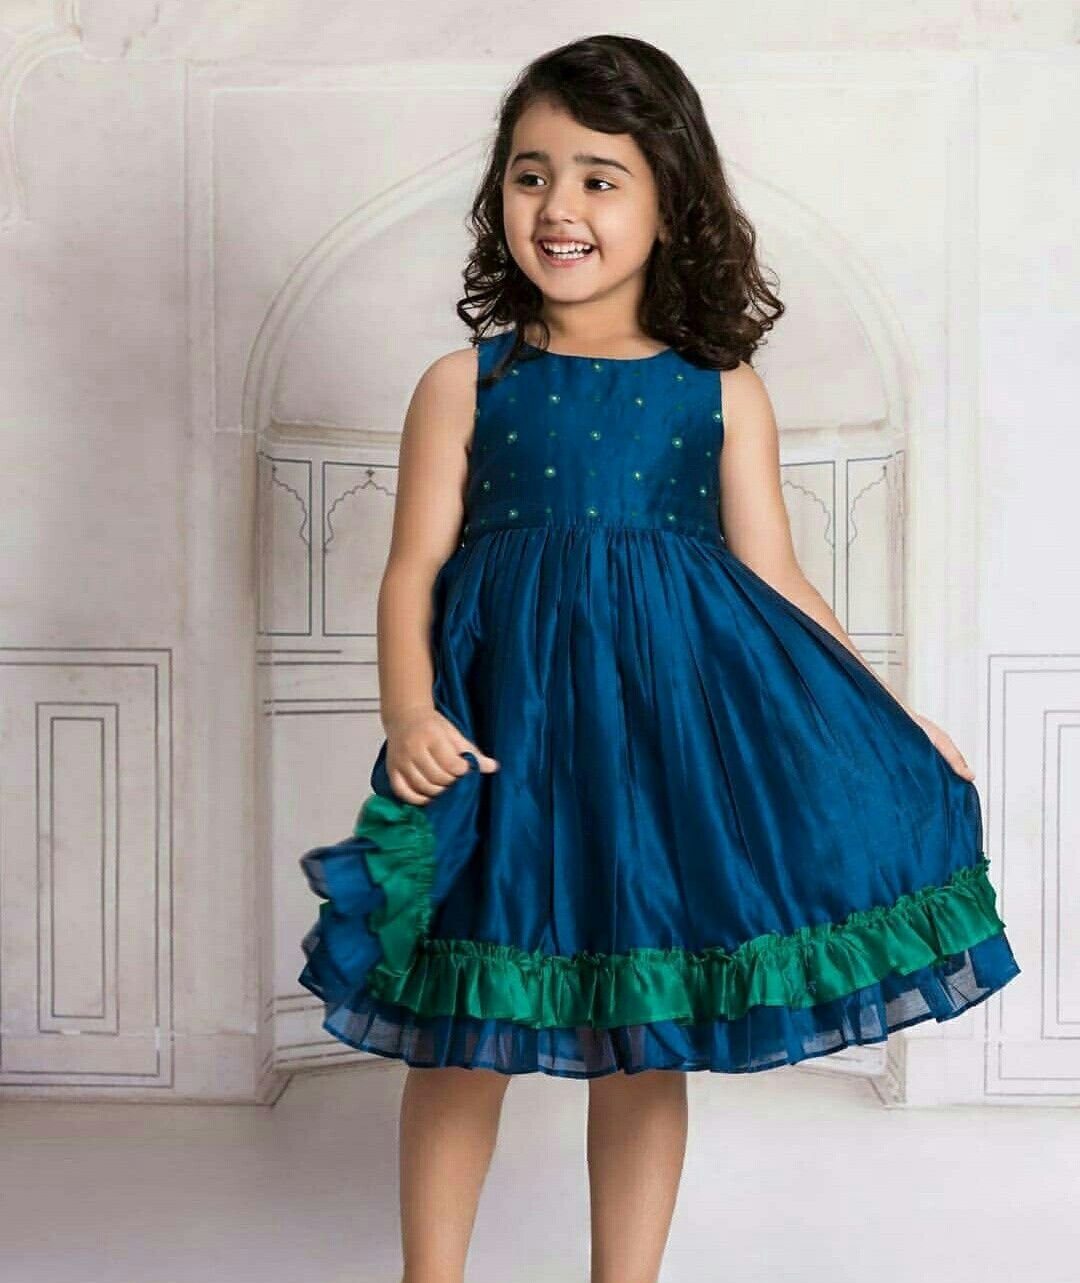 2a04e4d65ee75 sainuzZ | Kids stylezZ in 2019 | Kids frocks design, Frocks for ...